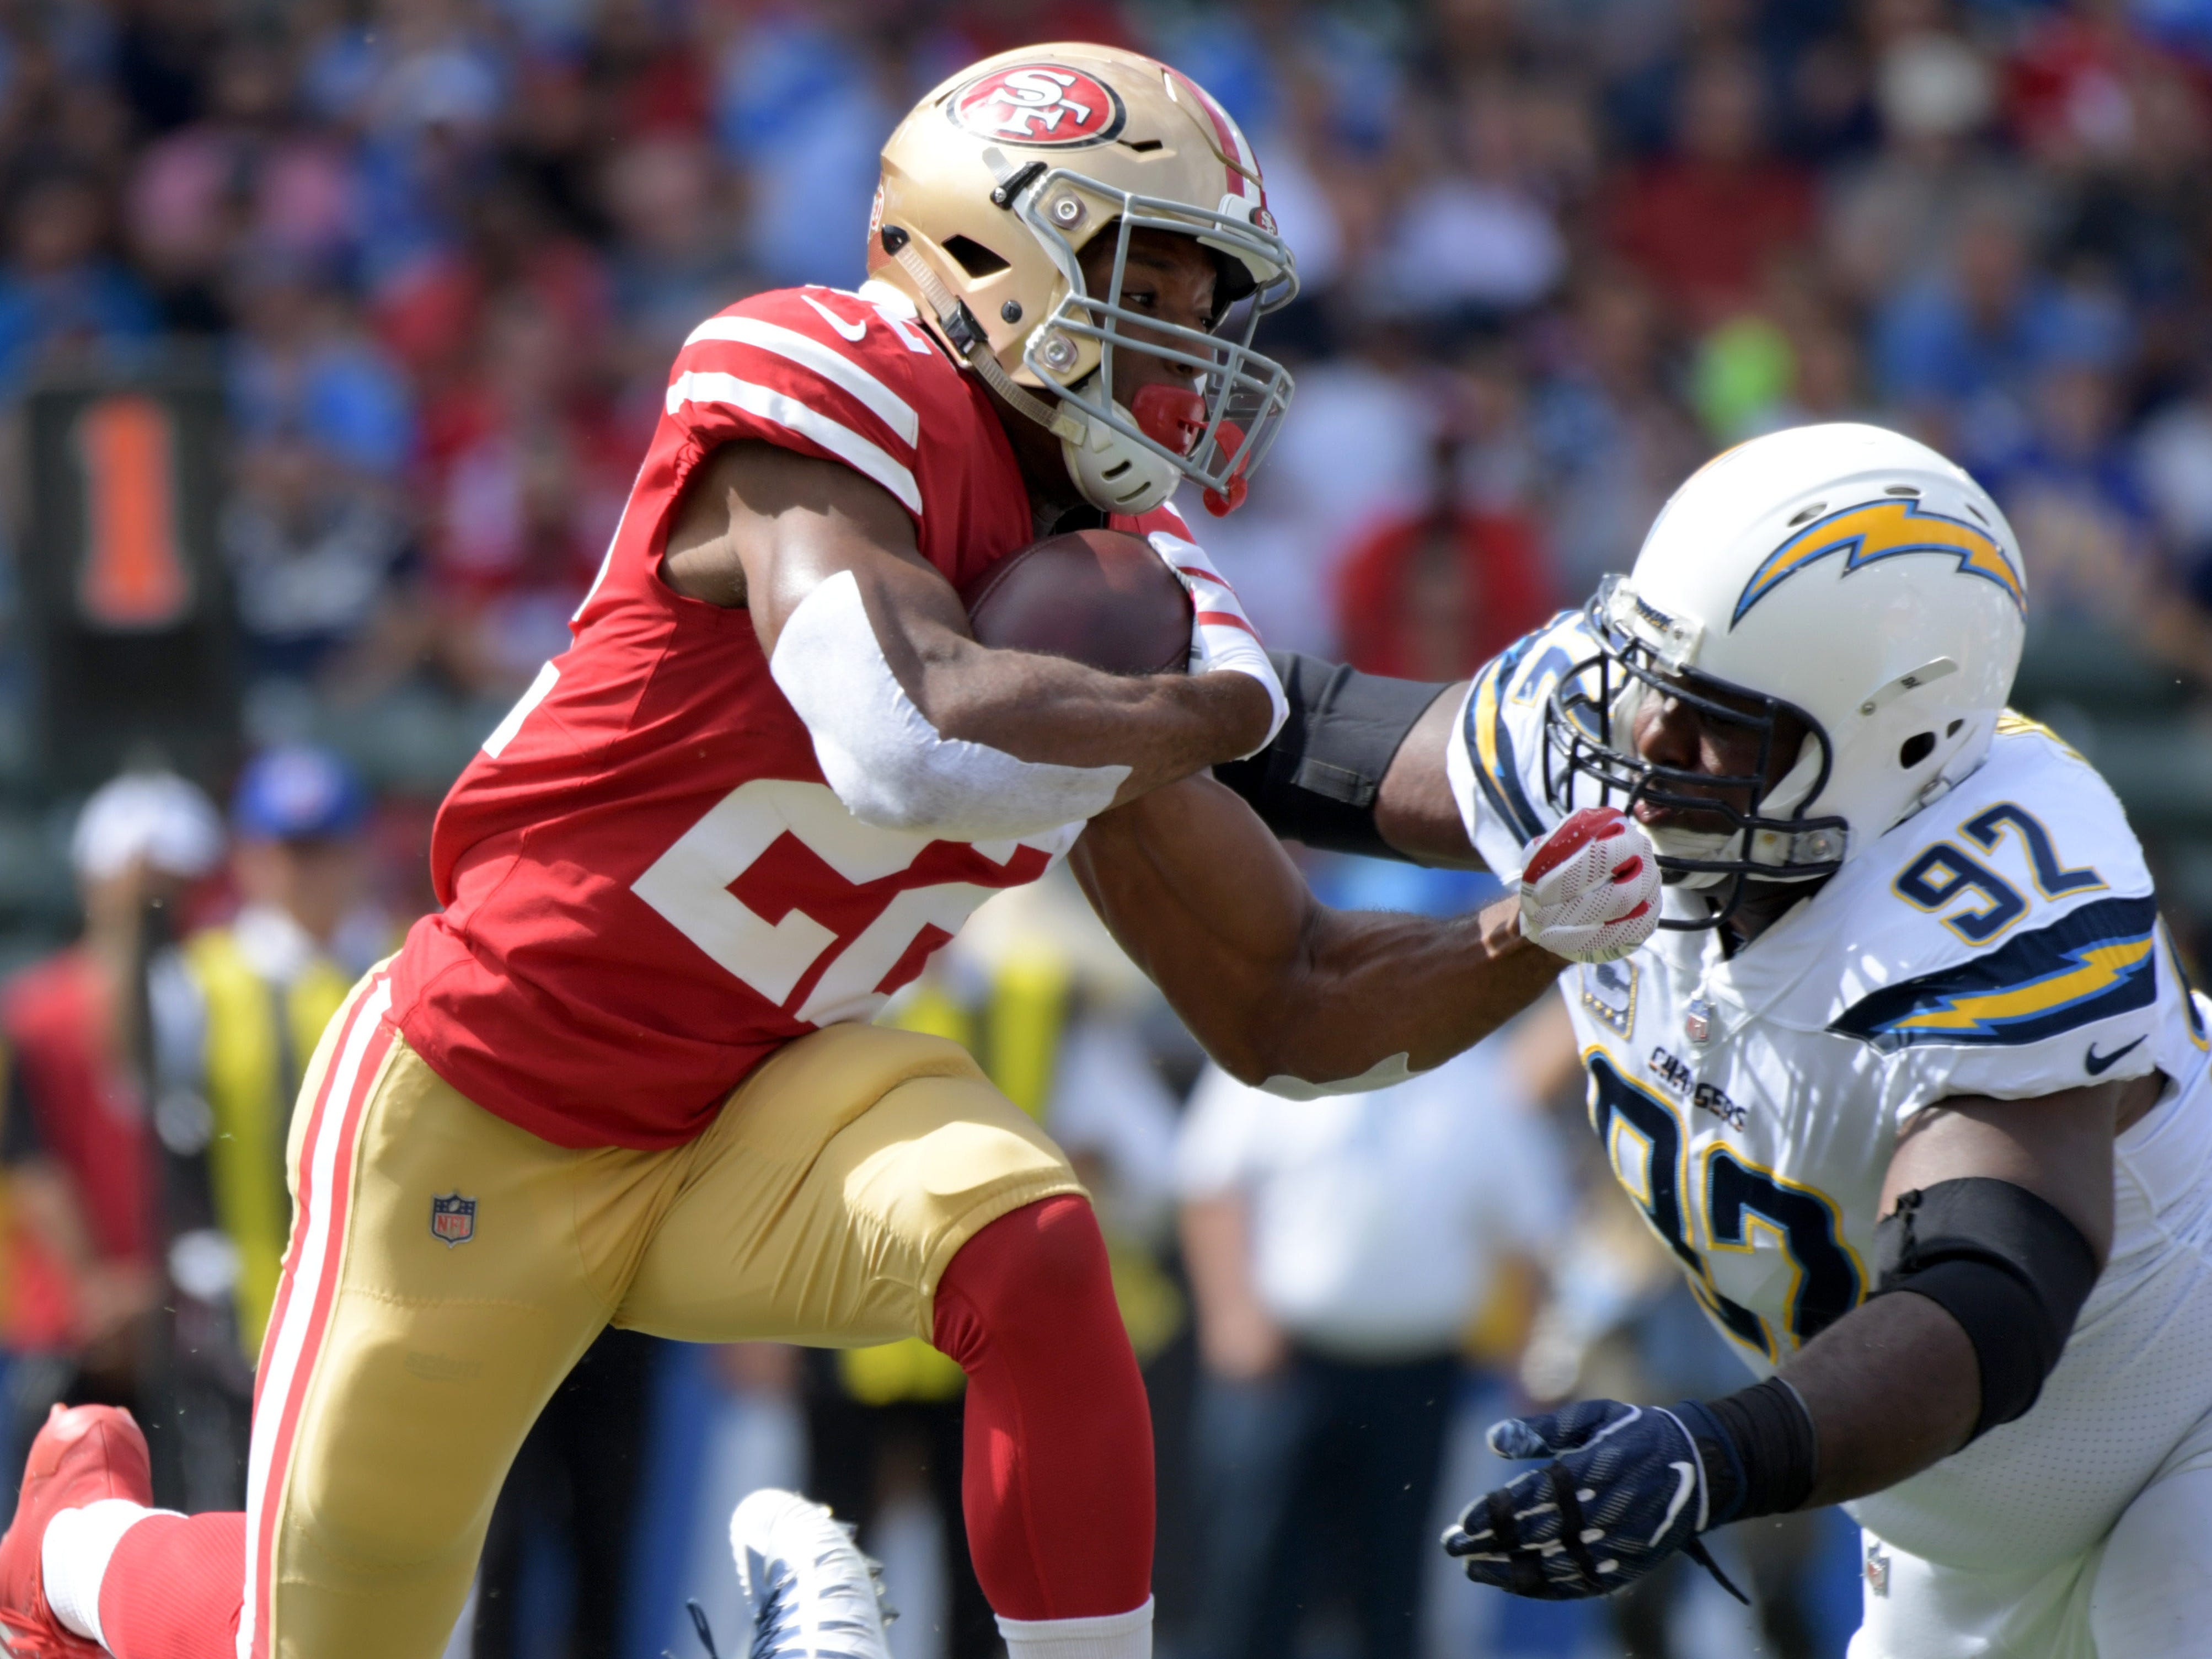 San Francisco 49ers running back Matt Breida carries the ball as Los Angeles Chargers defensive tackle Brandon Mebane makes the tackle during the first half at StubHub Center.